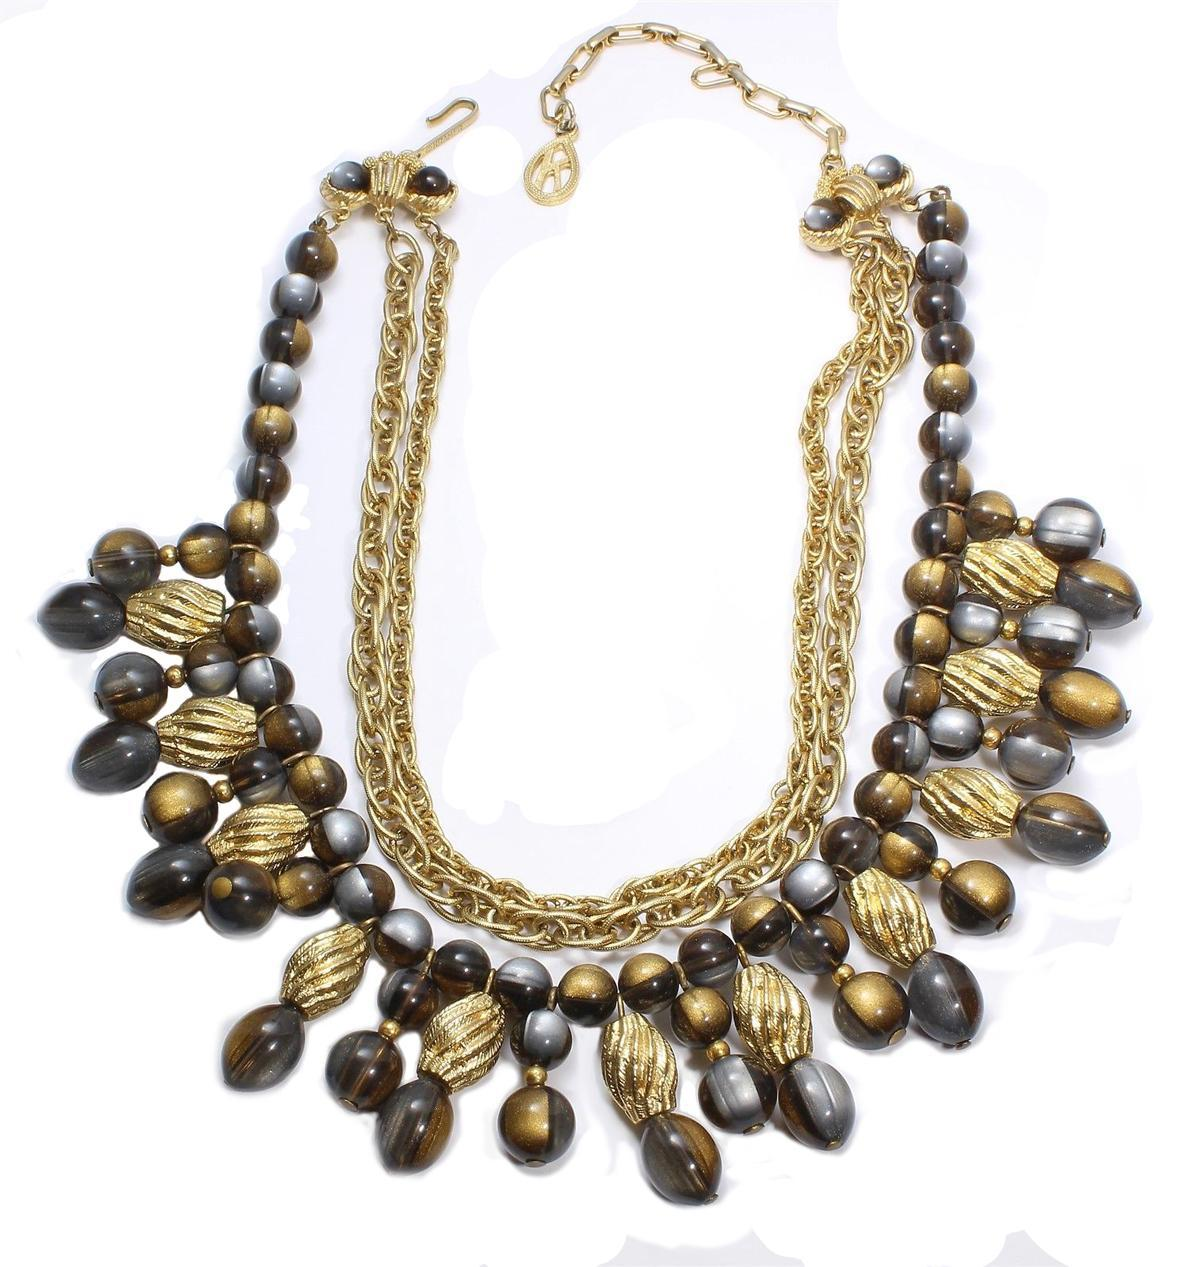 Vintage Gray & Gold Signed Kramer Bib Necklace